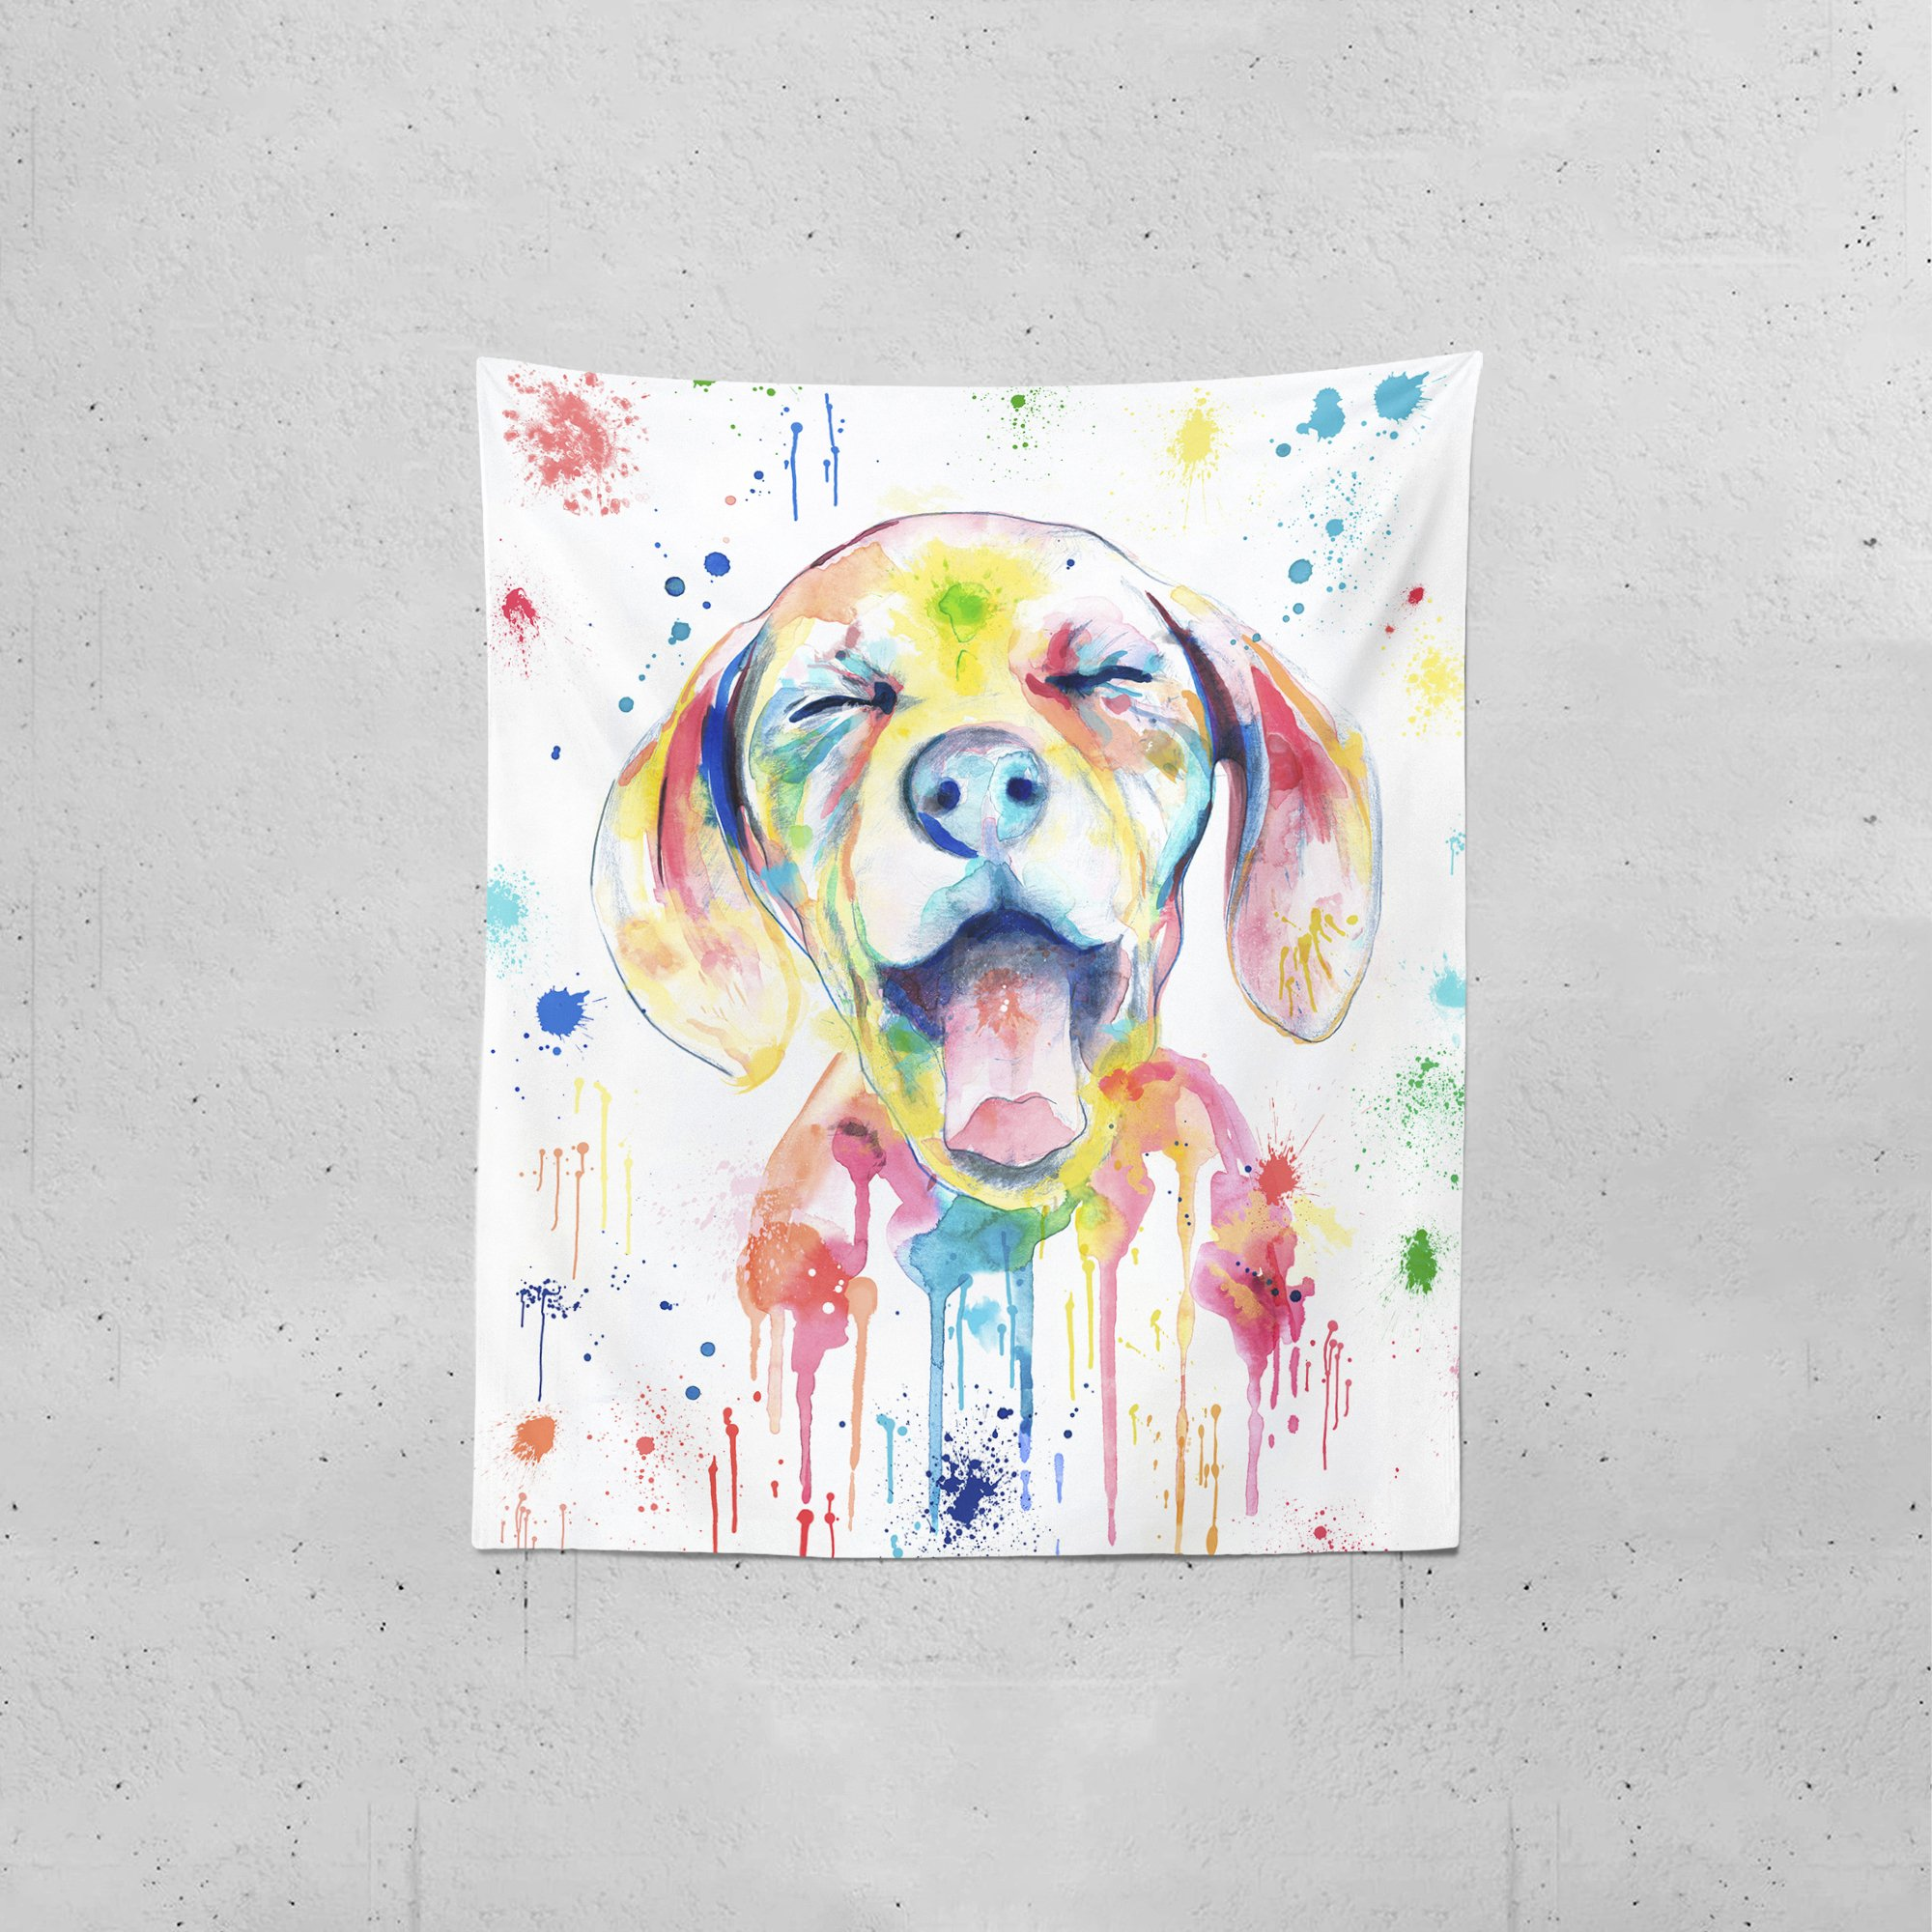 Lume.ly - Ditzy Dog Colorful Large Wall Tapestry, Exclusive Vibrant Art Decor for Bedroom Living Room Dorm Wall Decor, Wall Hanging, Beach Tapestries (50x60 inches) by Lume.ly (Image #2)